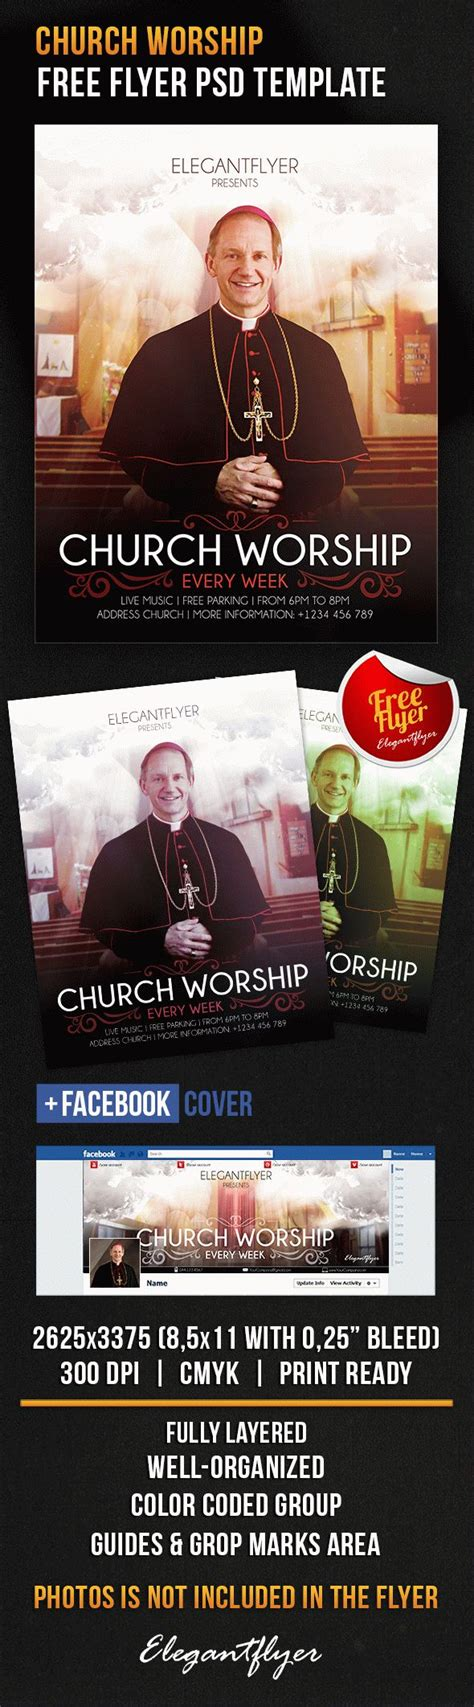 Free Photoshop Flyer Template Church Worship Facebook Cover Flyershitter Com Free Church Flyer Templates Photoshop